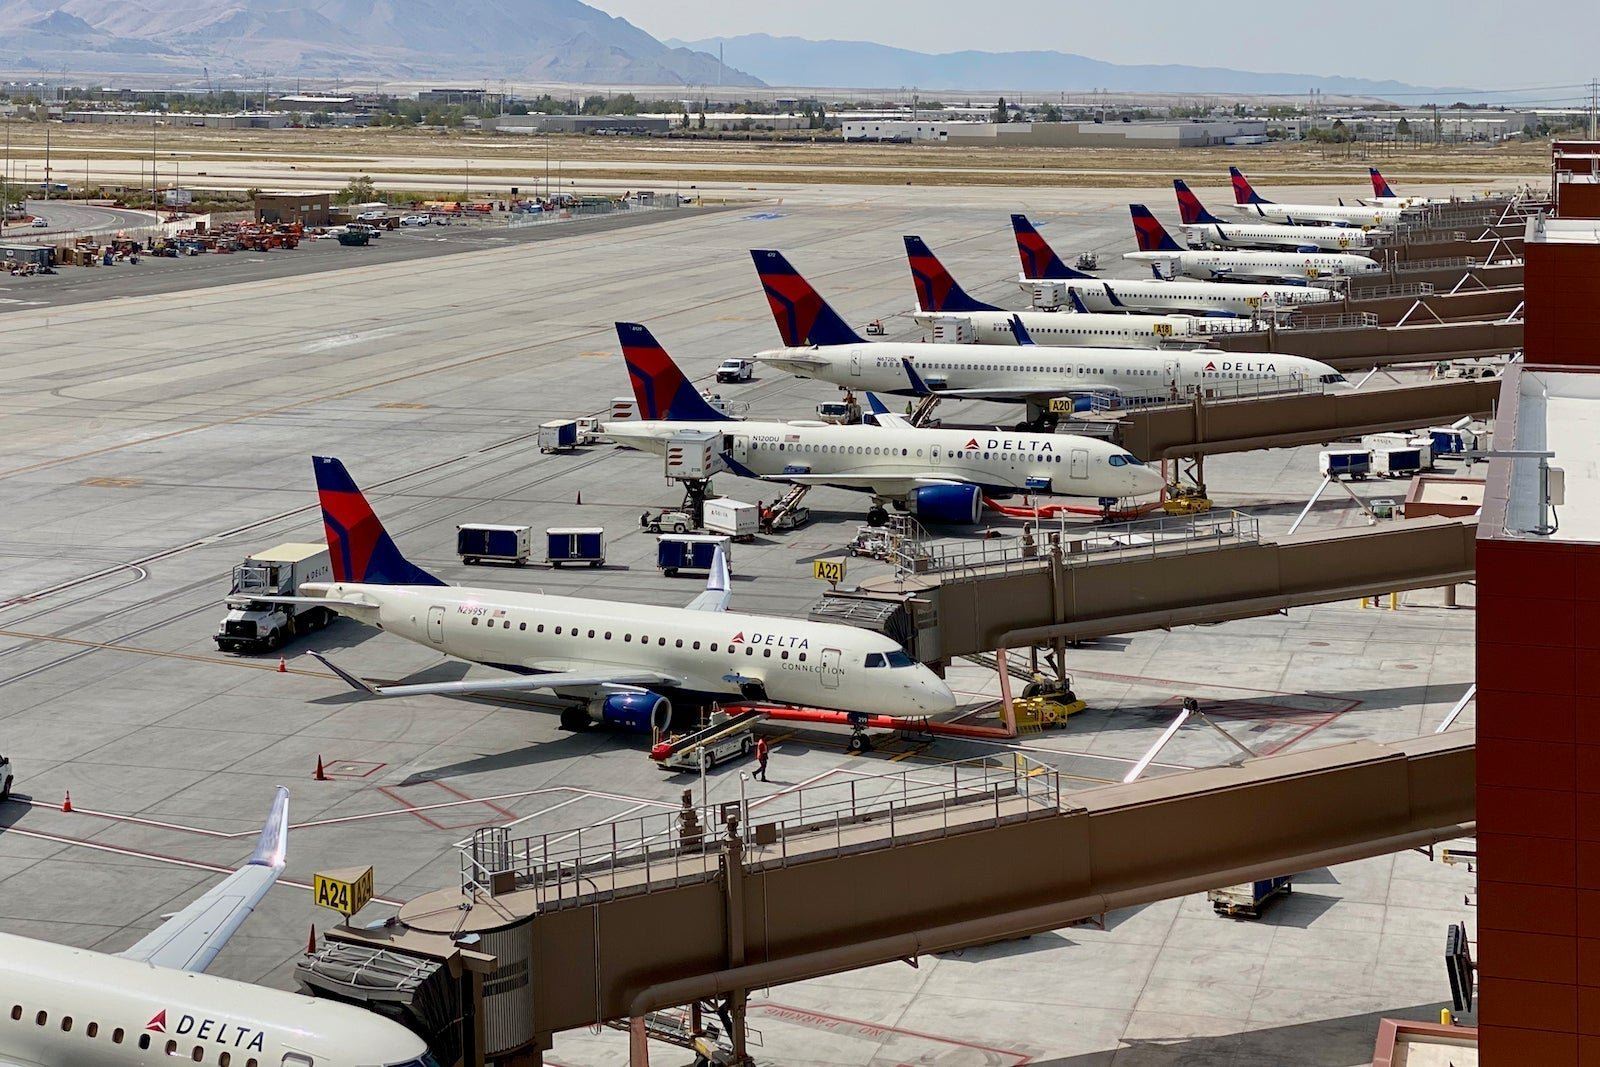 Delta unveils 39 new and expanded routes to 22 destinations in major route-map shakeup